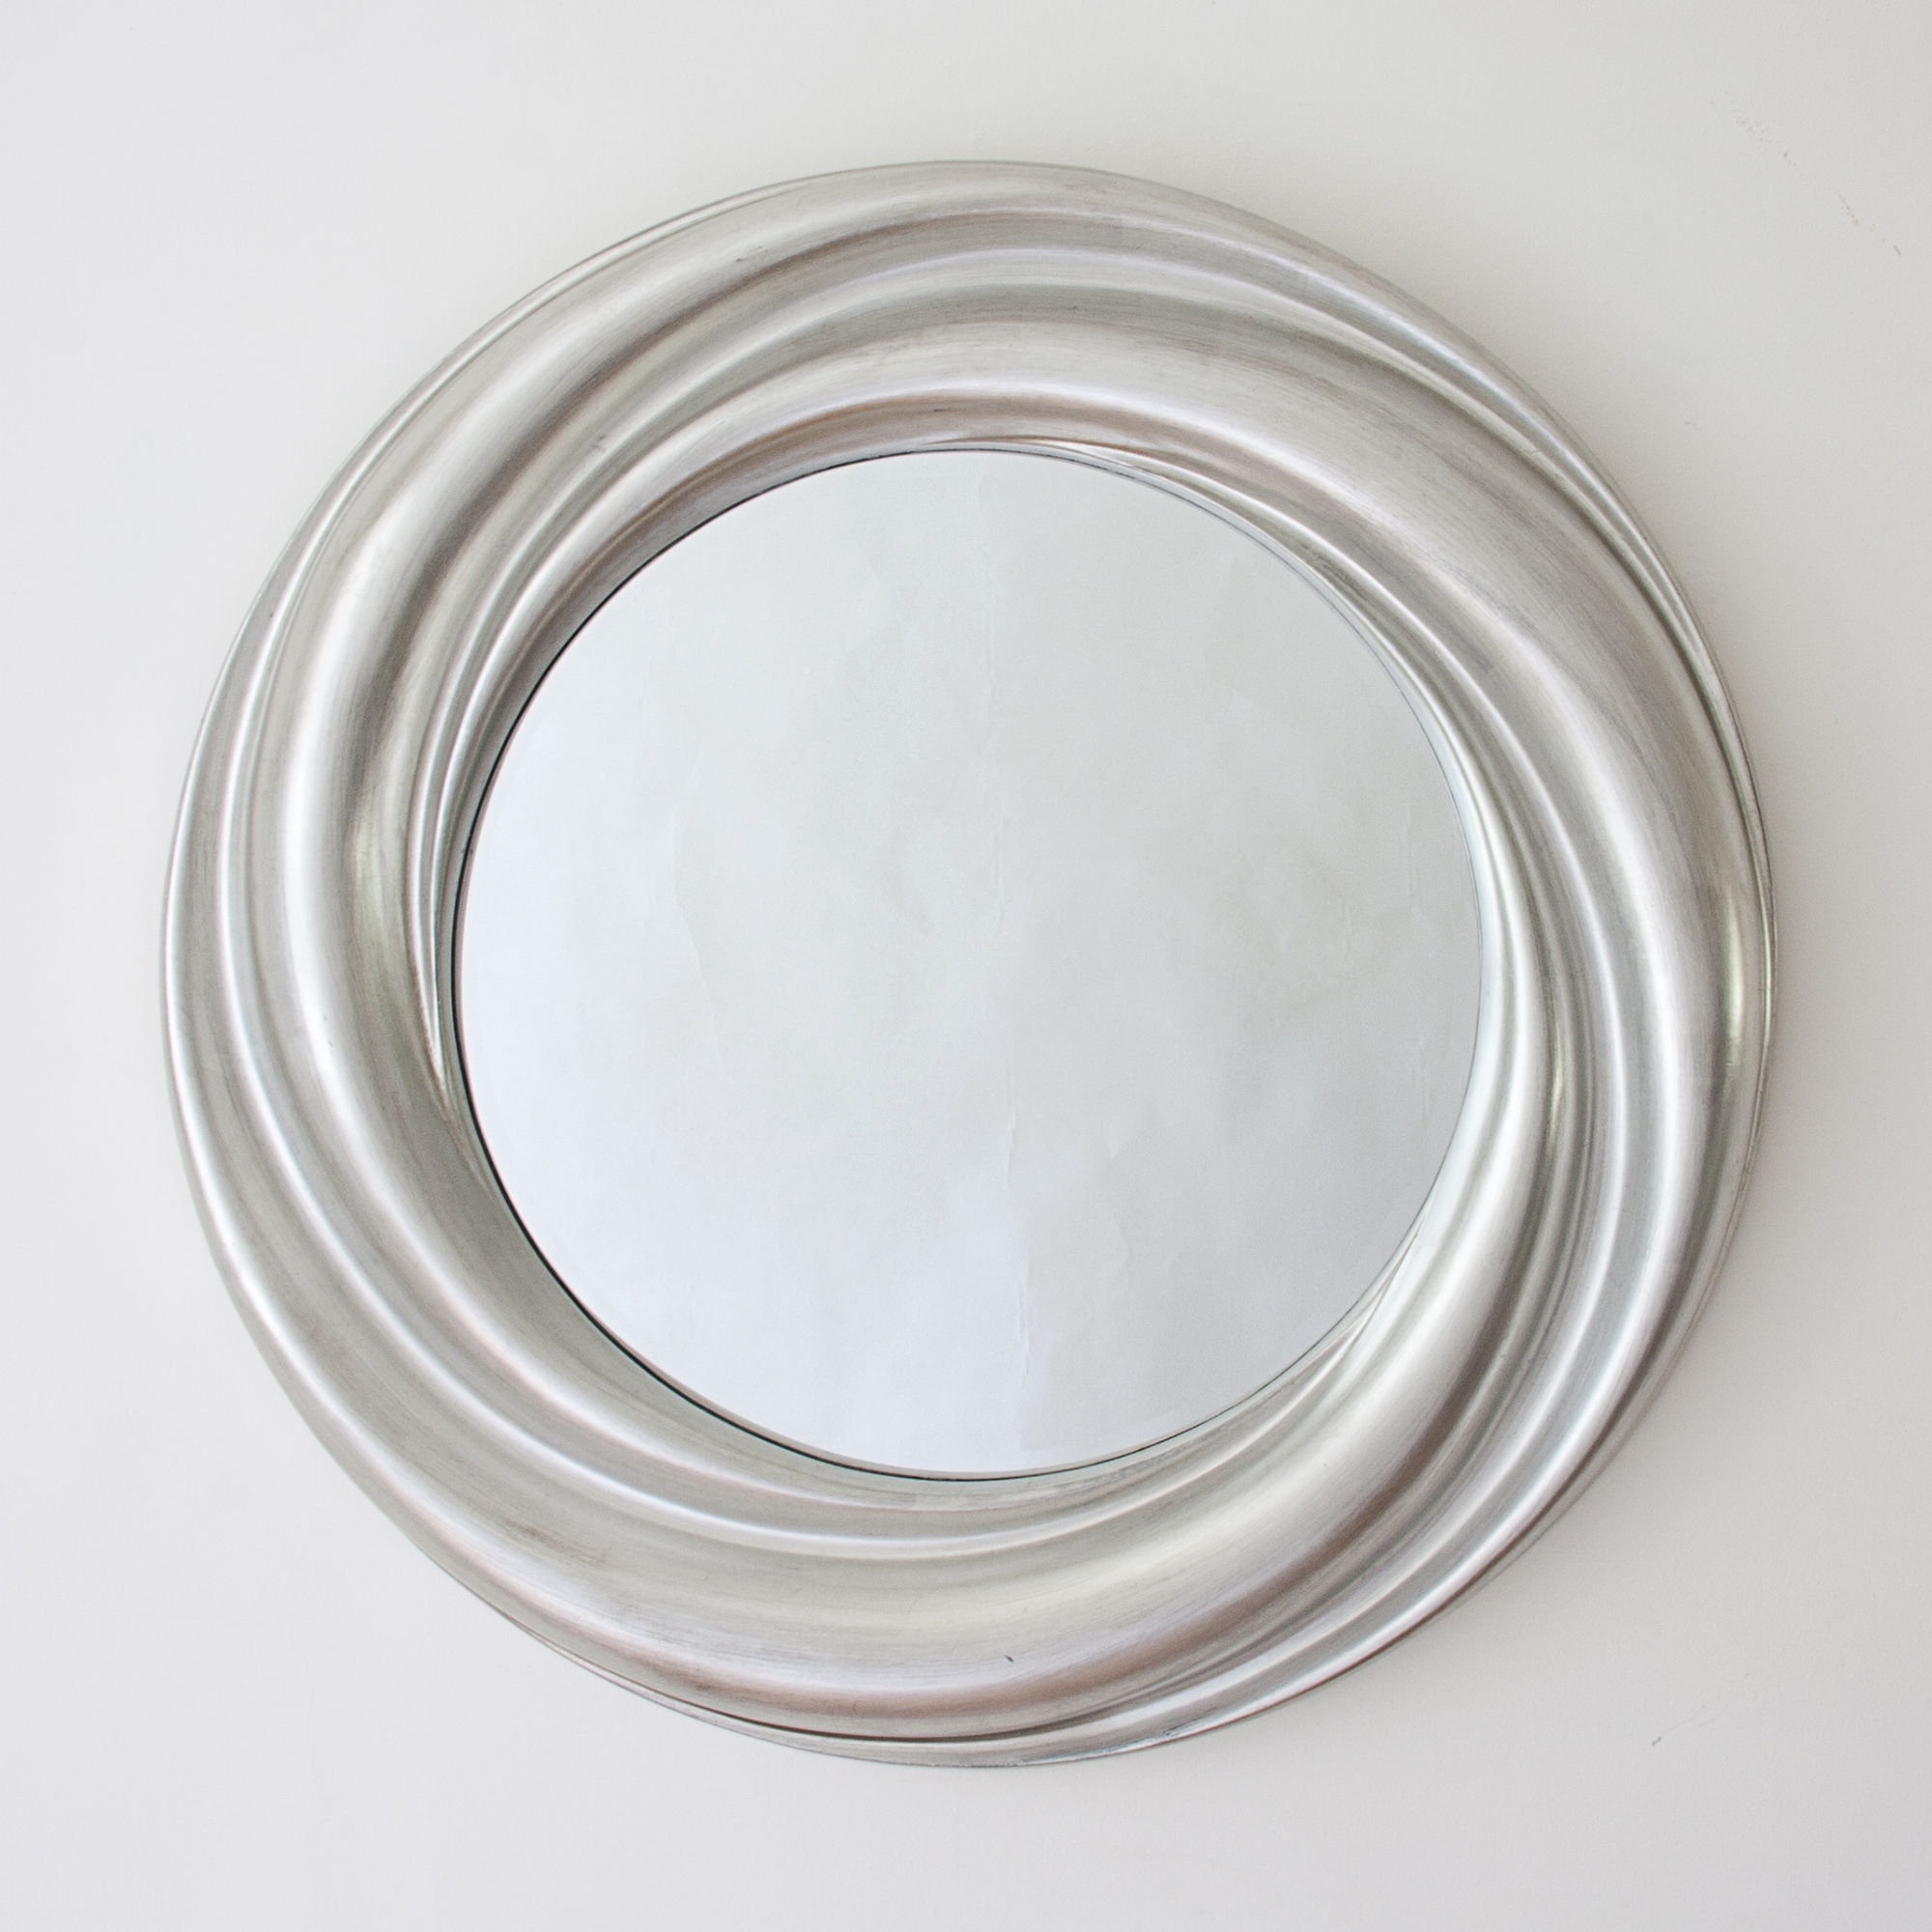 Bathroom Round Silver Mirror Pictures Decorations Inspiration Intended For Round Silver Mirrors (Image 1 of 15)